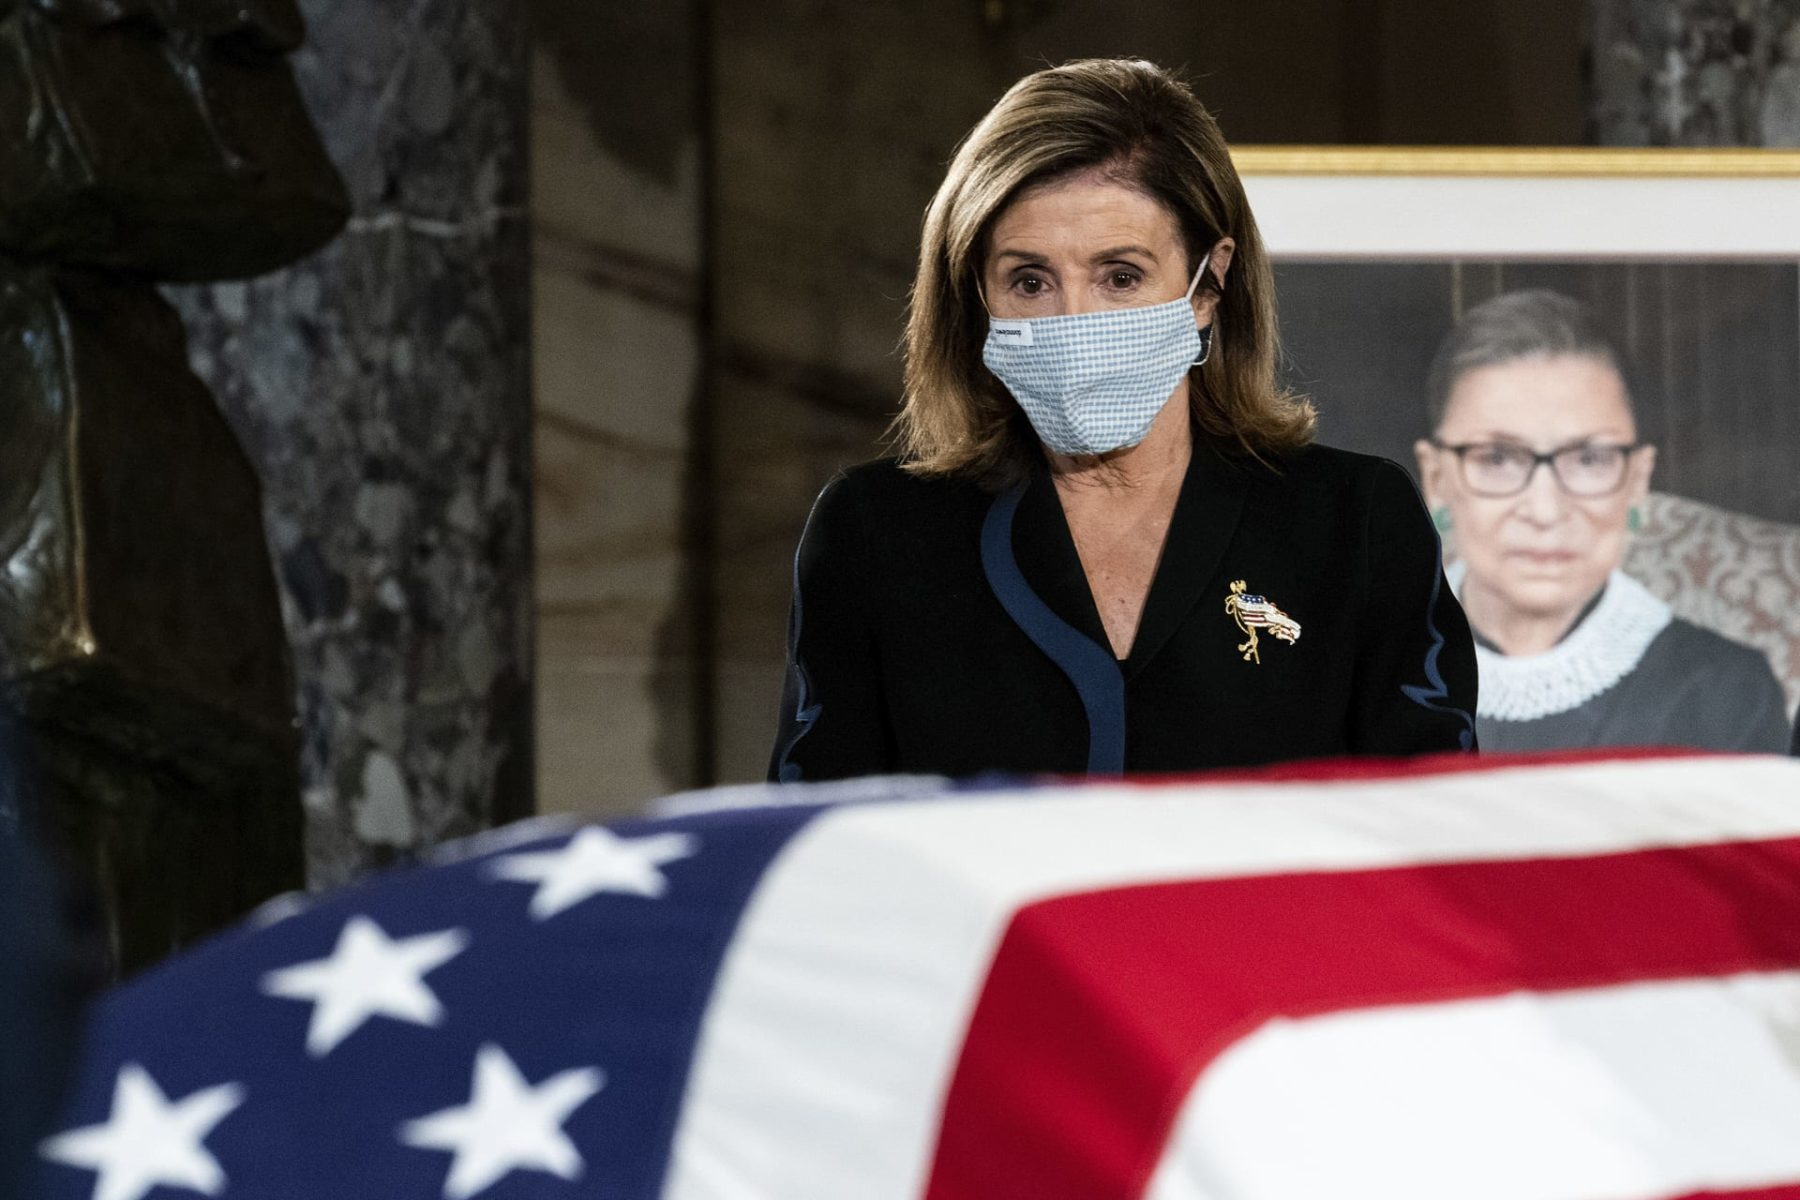 House Speaker Nancy Pelosi pays her respects to Justice Ruth Bader Ginsburg as she lies in state in the U.S. Capitol on Friday, Sept. 25, 2020. Ginsburg died at the age of 87 on Sept. 18 and is the first women to lie in state at the Capitol.